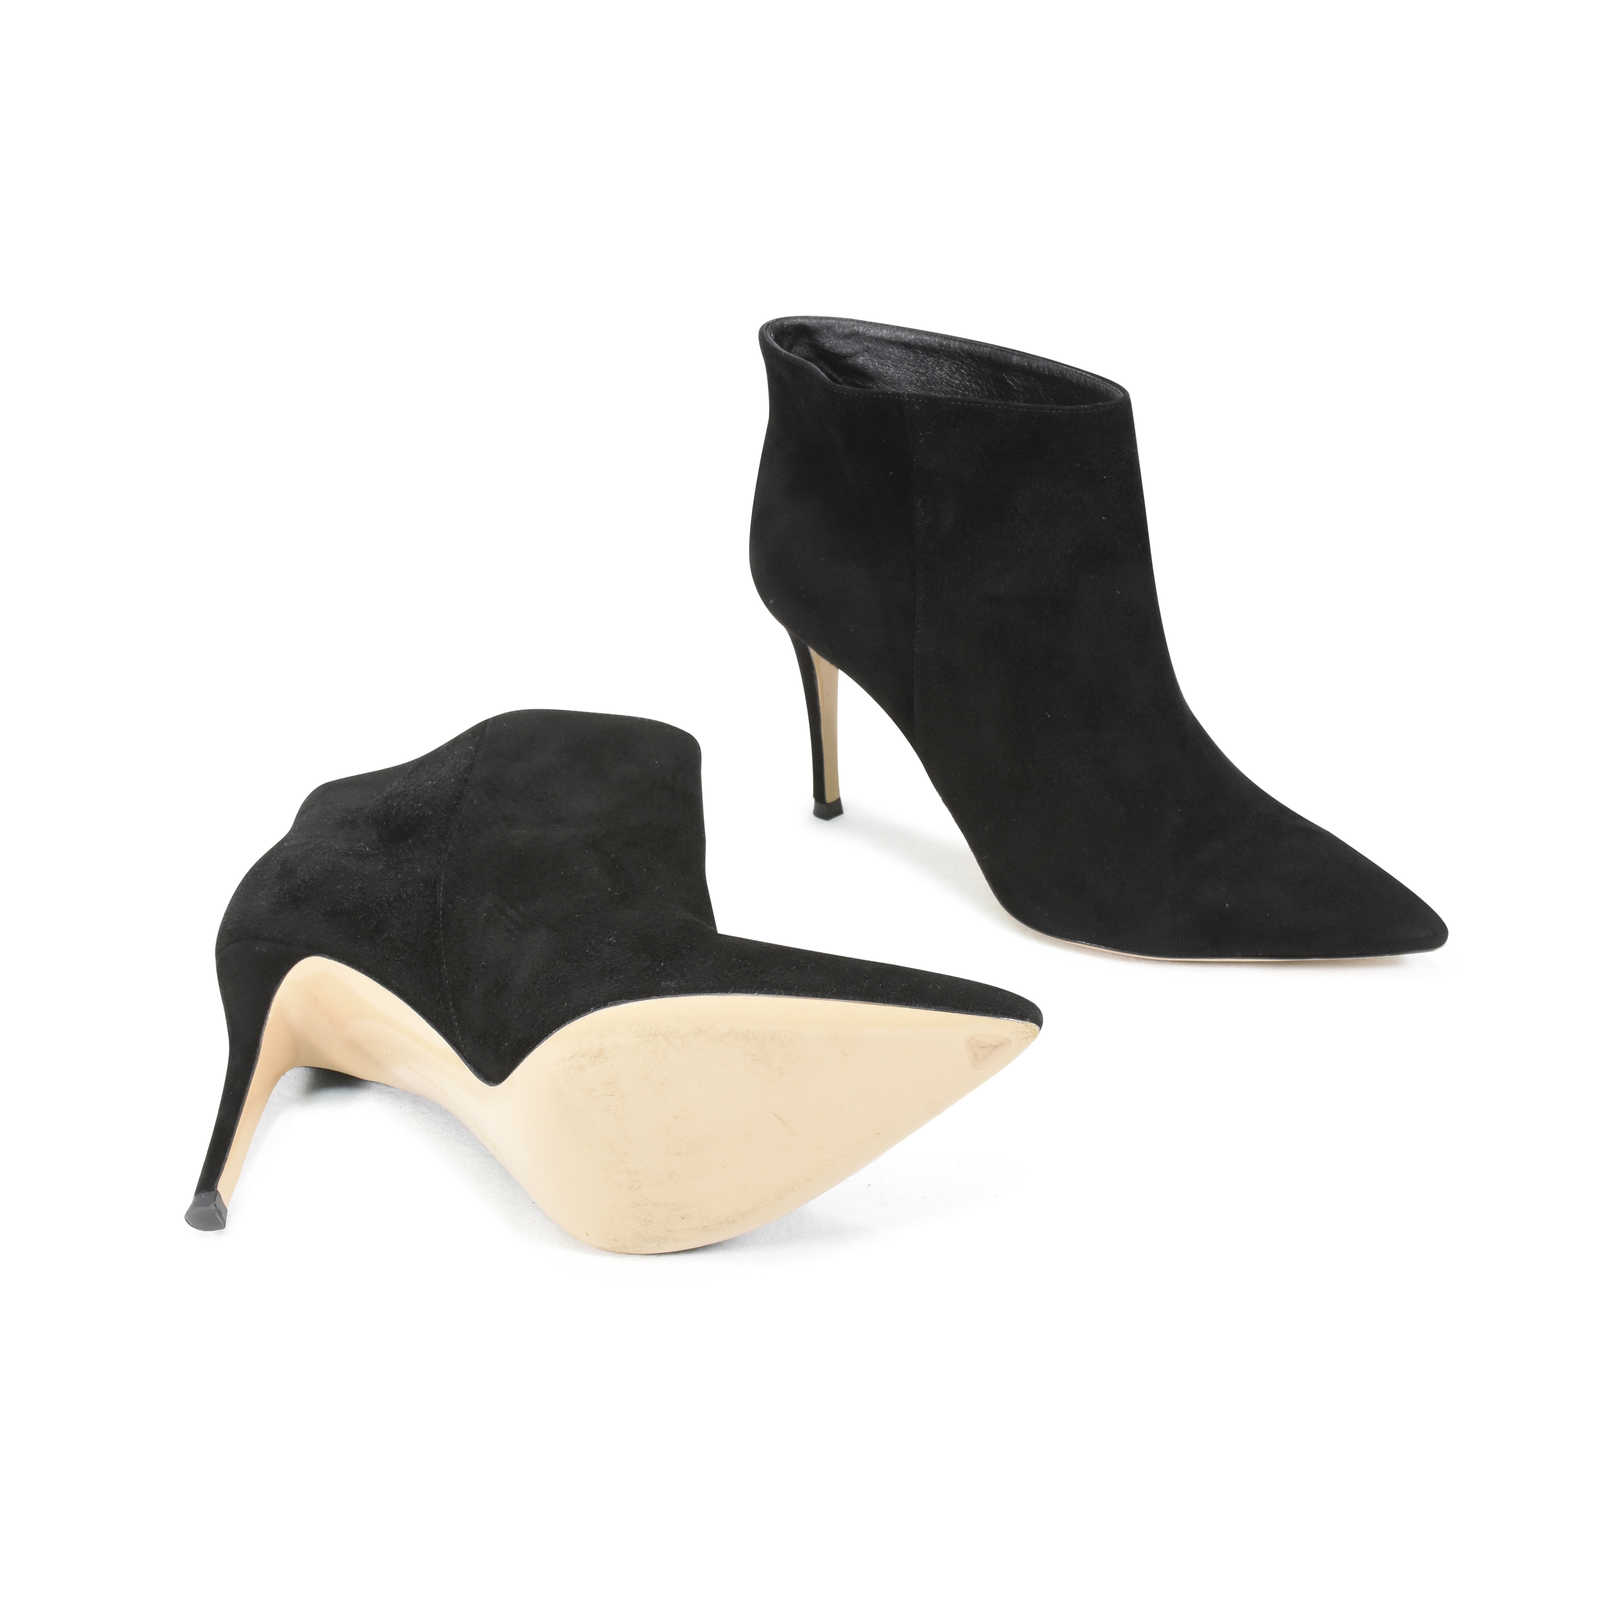 4c5e05b5c ... Authentic Second Hand Gianvito Rossi Stilo Suede Ankle Boots  (PSS-126-00022) ...